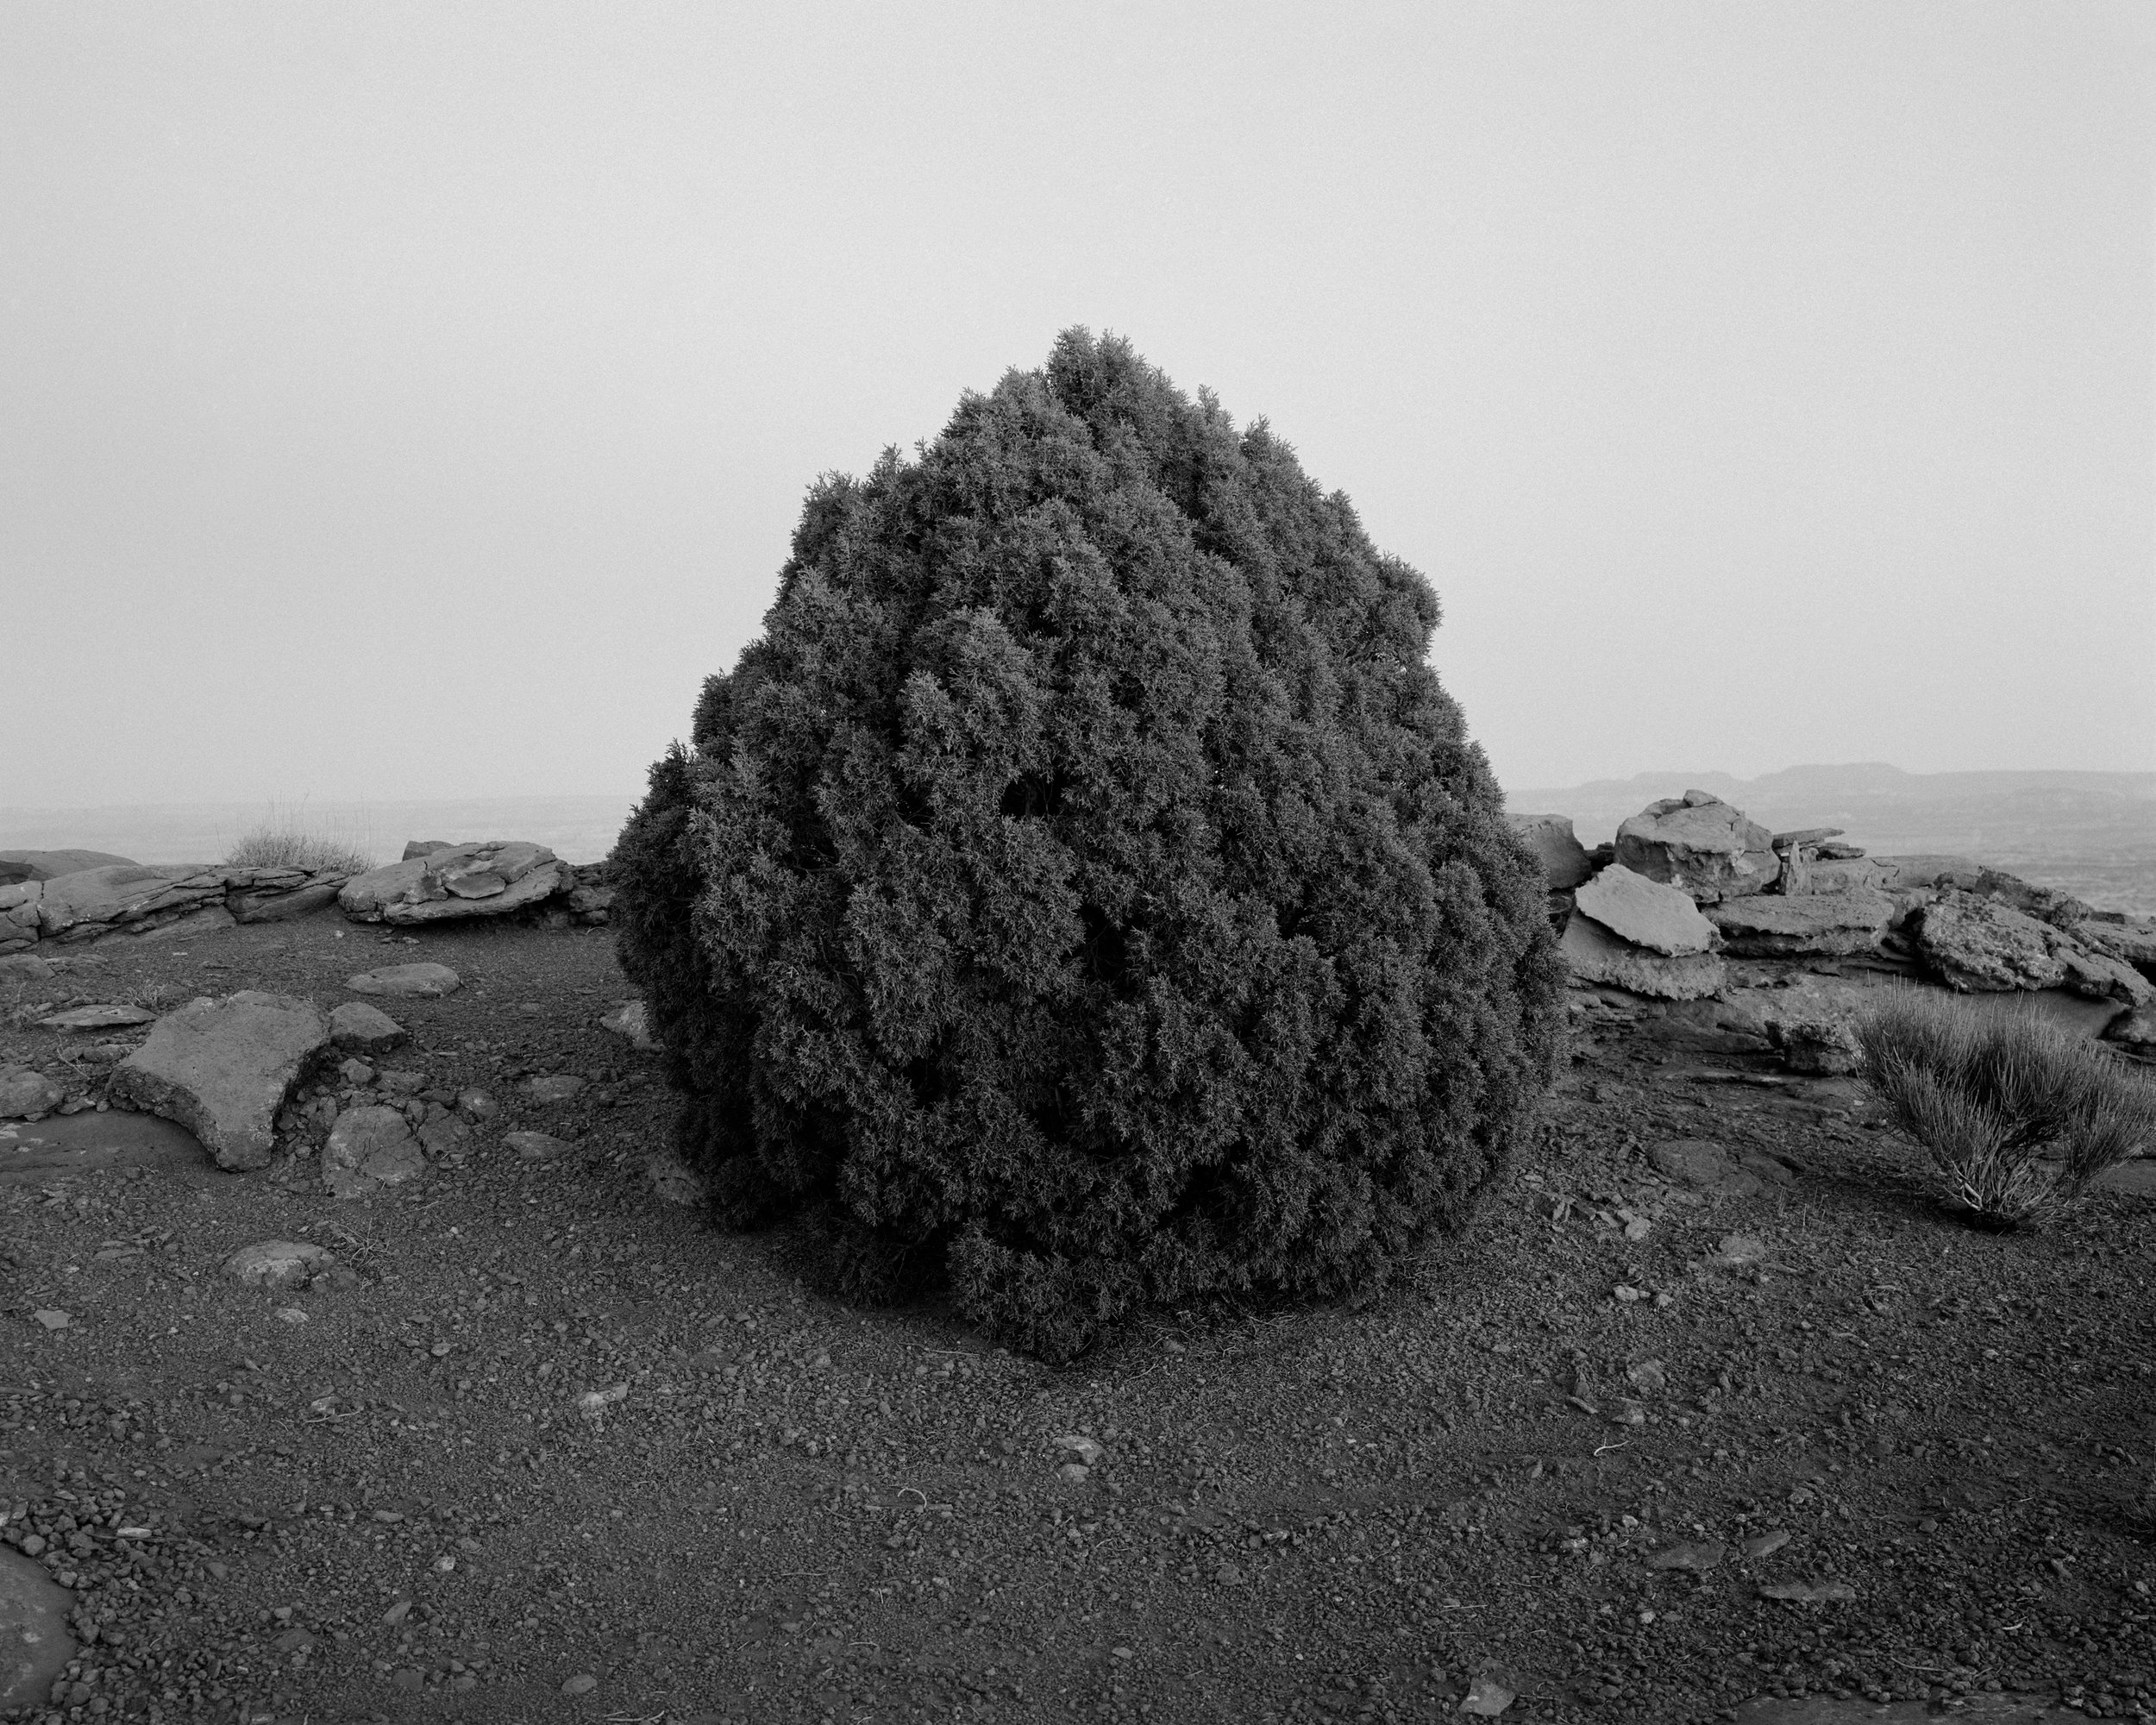 MICHAEL LUNDGREN  Juniper, 2003  Gelatin Silver Print  Available sizes 20 x 24 in, ed. 10 + 2AP 32 x 40 in, ed. 3 + 1AP